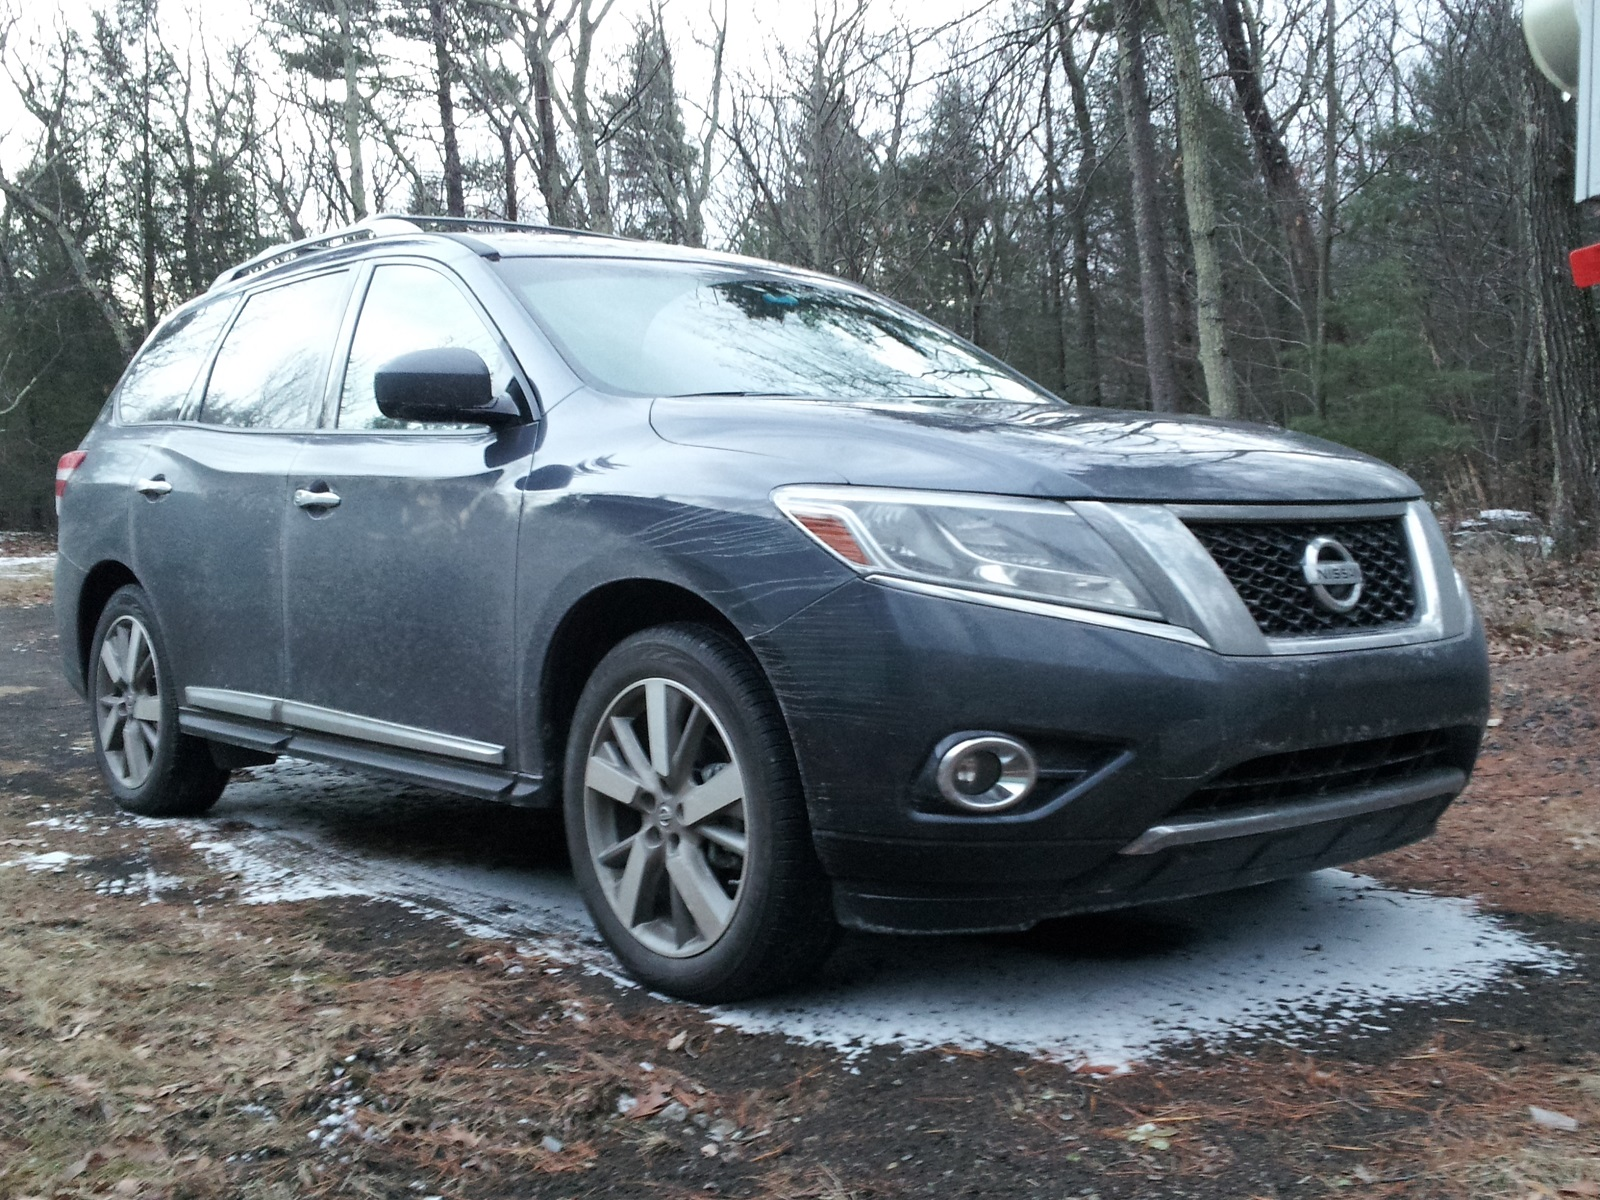 2014 nissan pathfinder hybrid gas mileage test disappointing. Black Bedroom Furniture Sets. Home Design Ideas